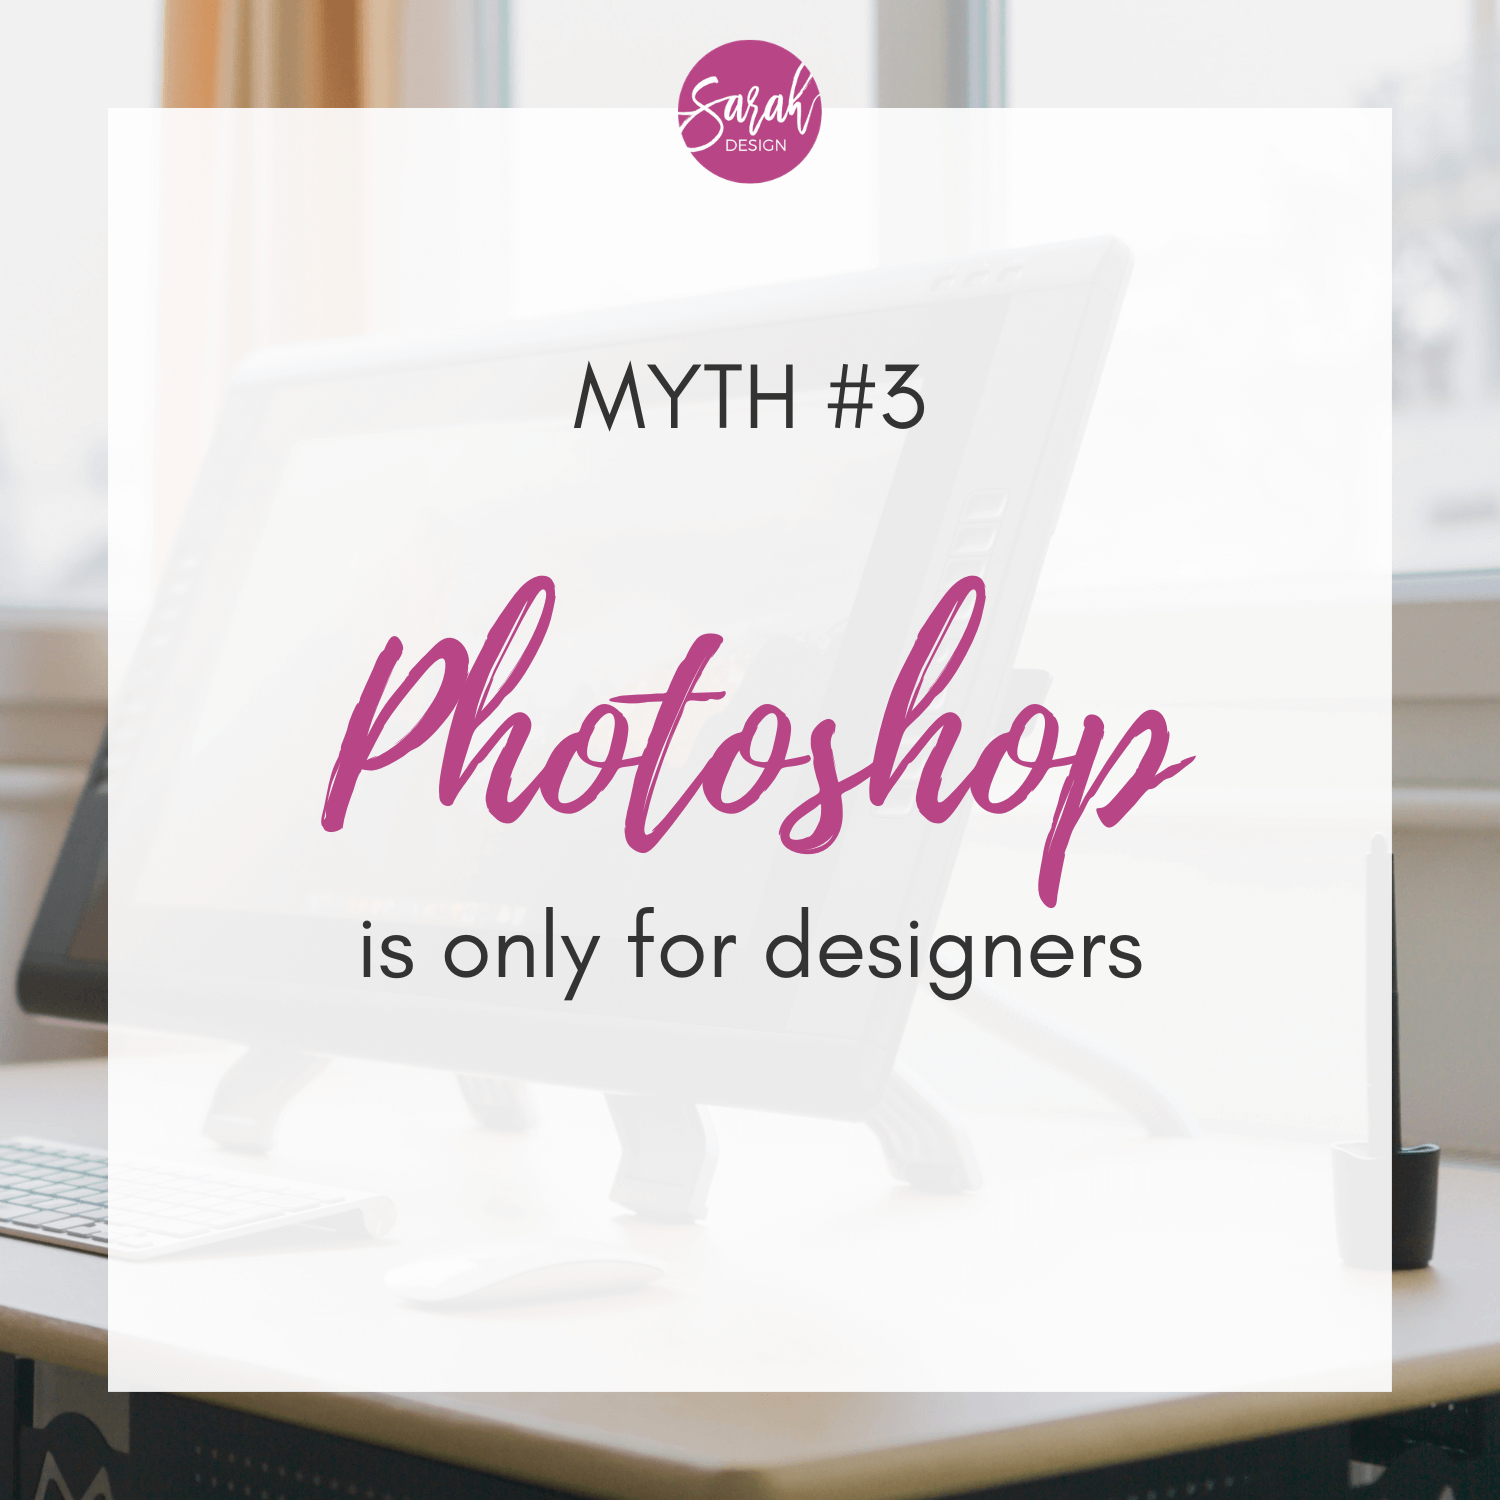 Myth: Photoshop is only for designers. By SarahDesign.com.